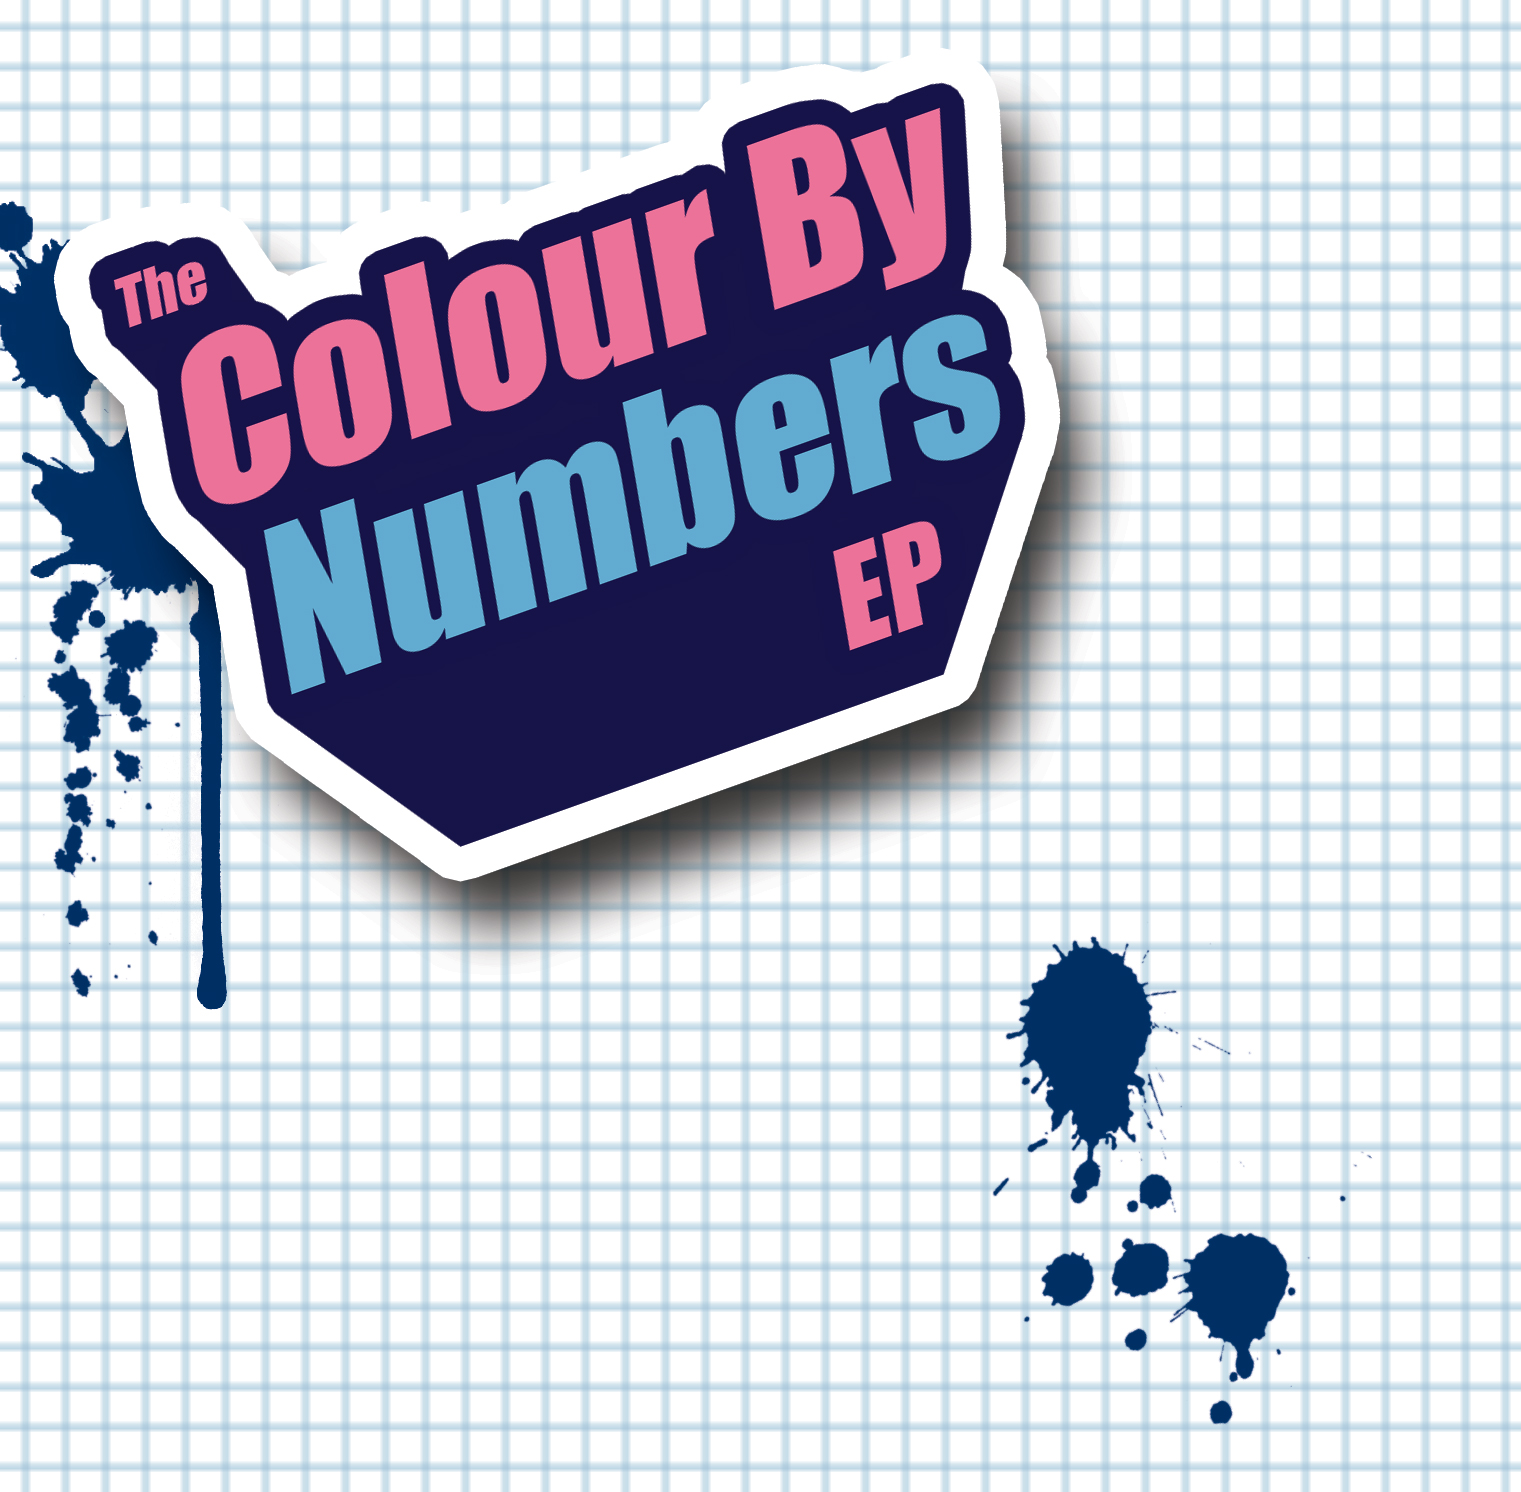 The Colour By Numbers EP